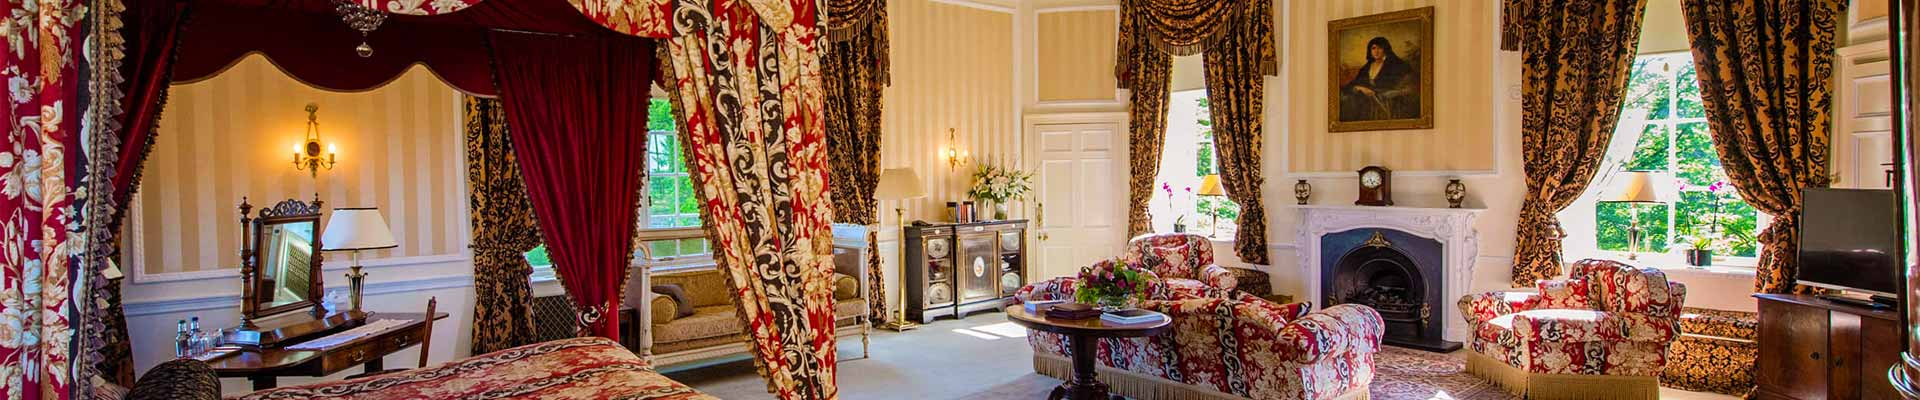 Photo of one of the beautiful bedroom suites at Glenapp Castle